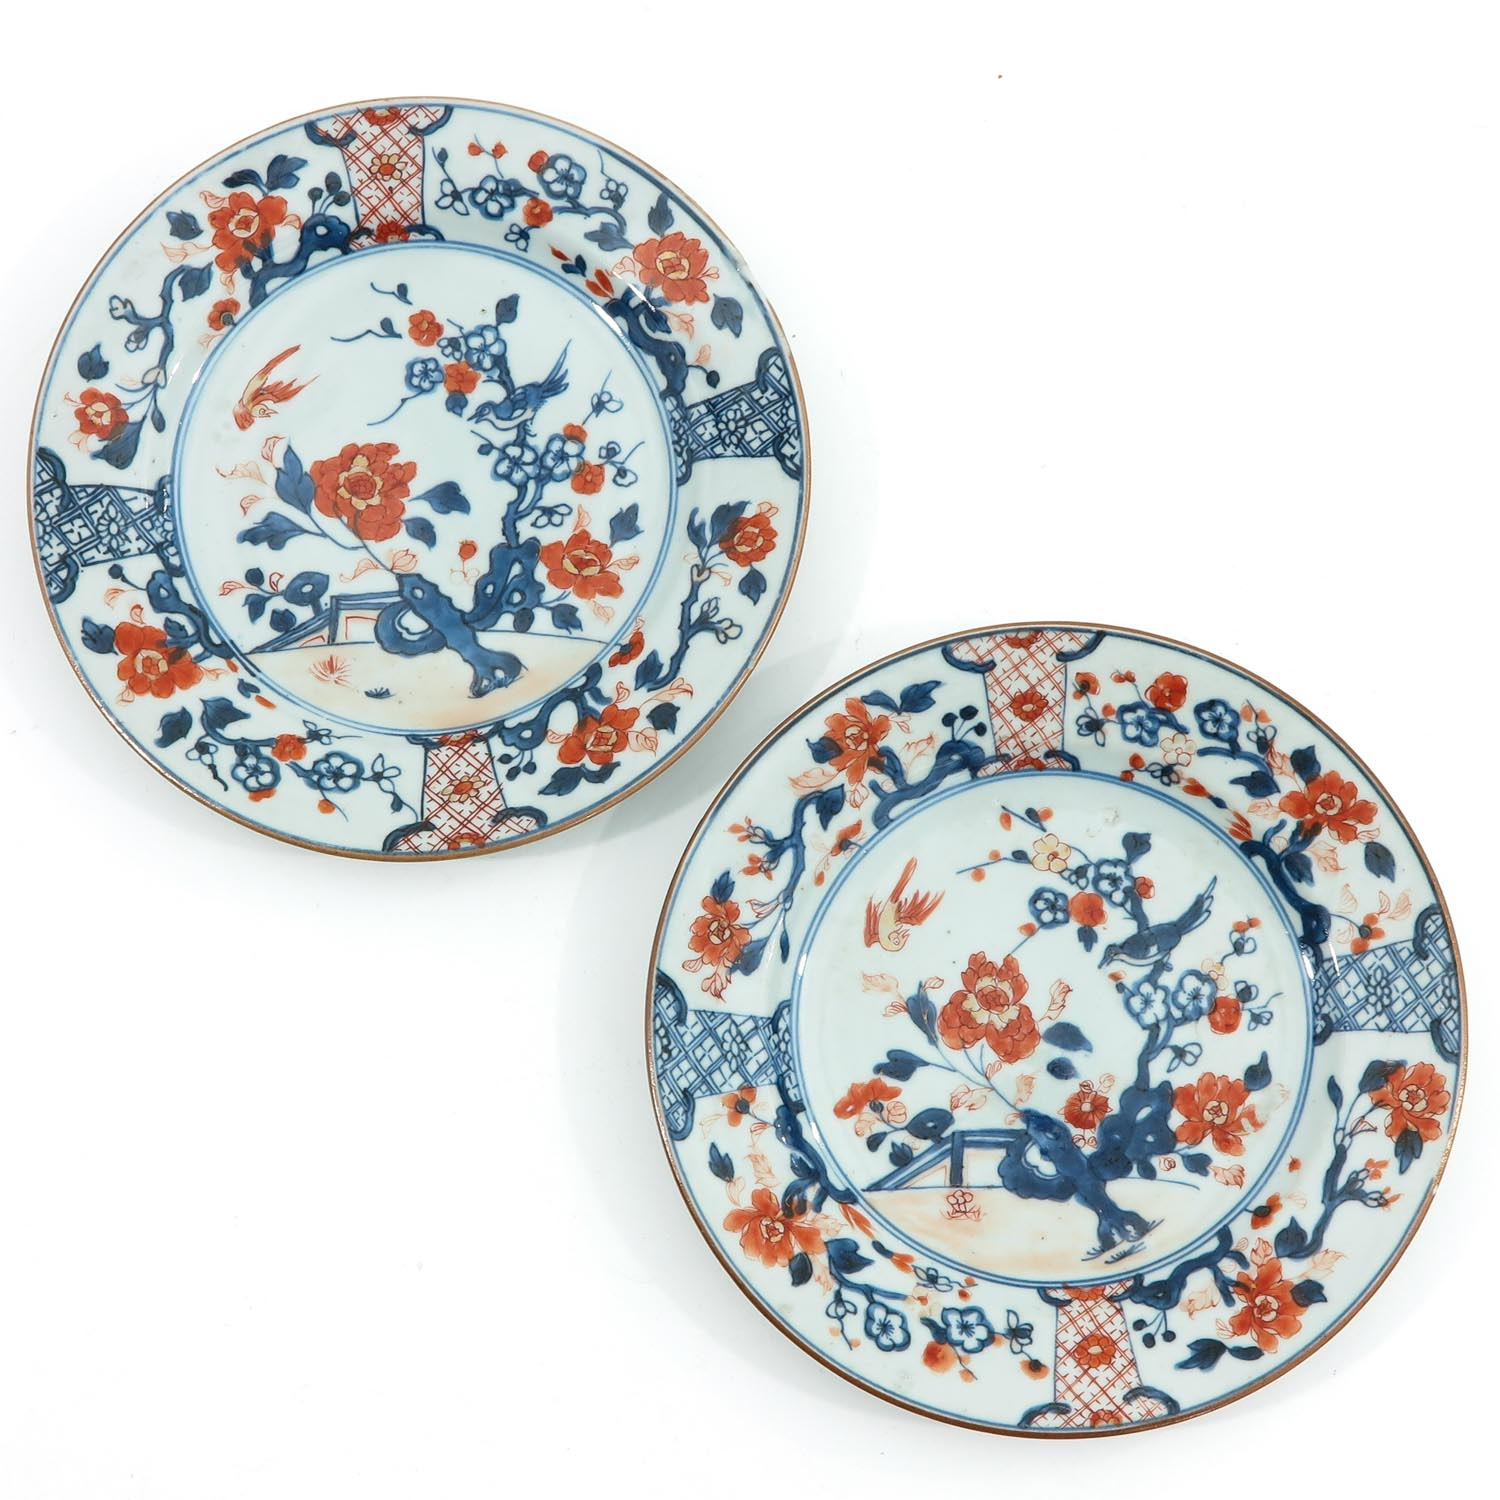 A Collection of 8 Imari Decor Plates - Image 5 of 10